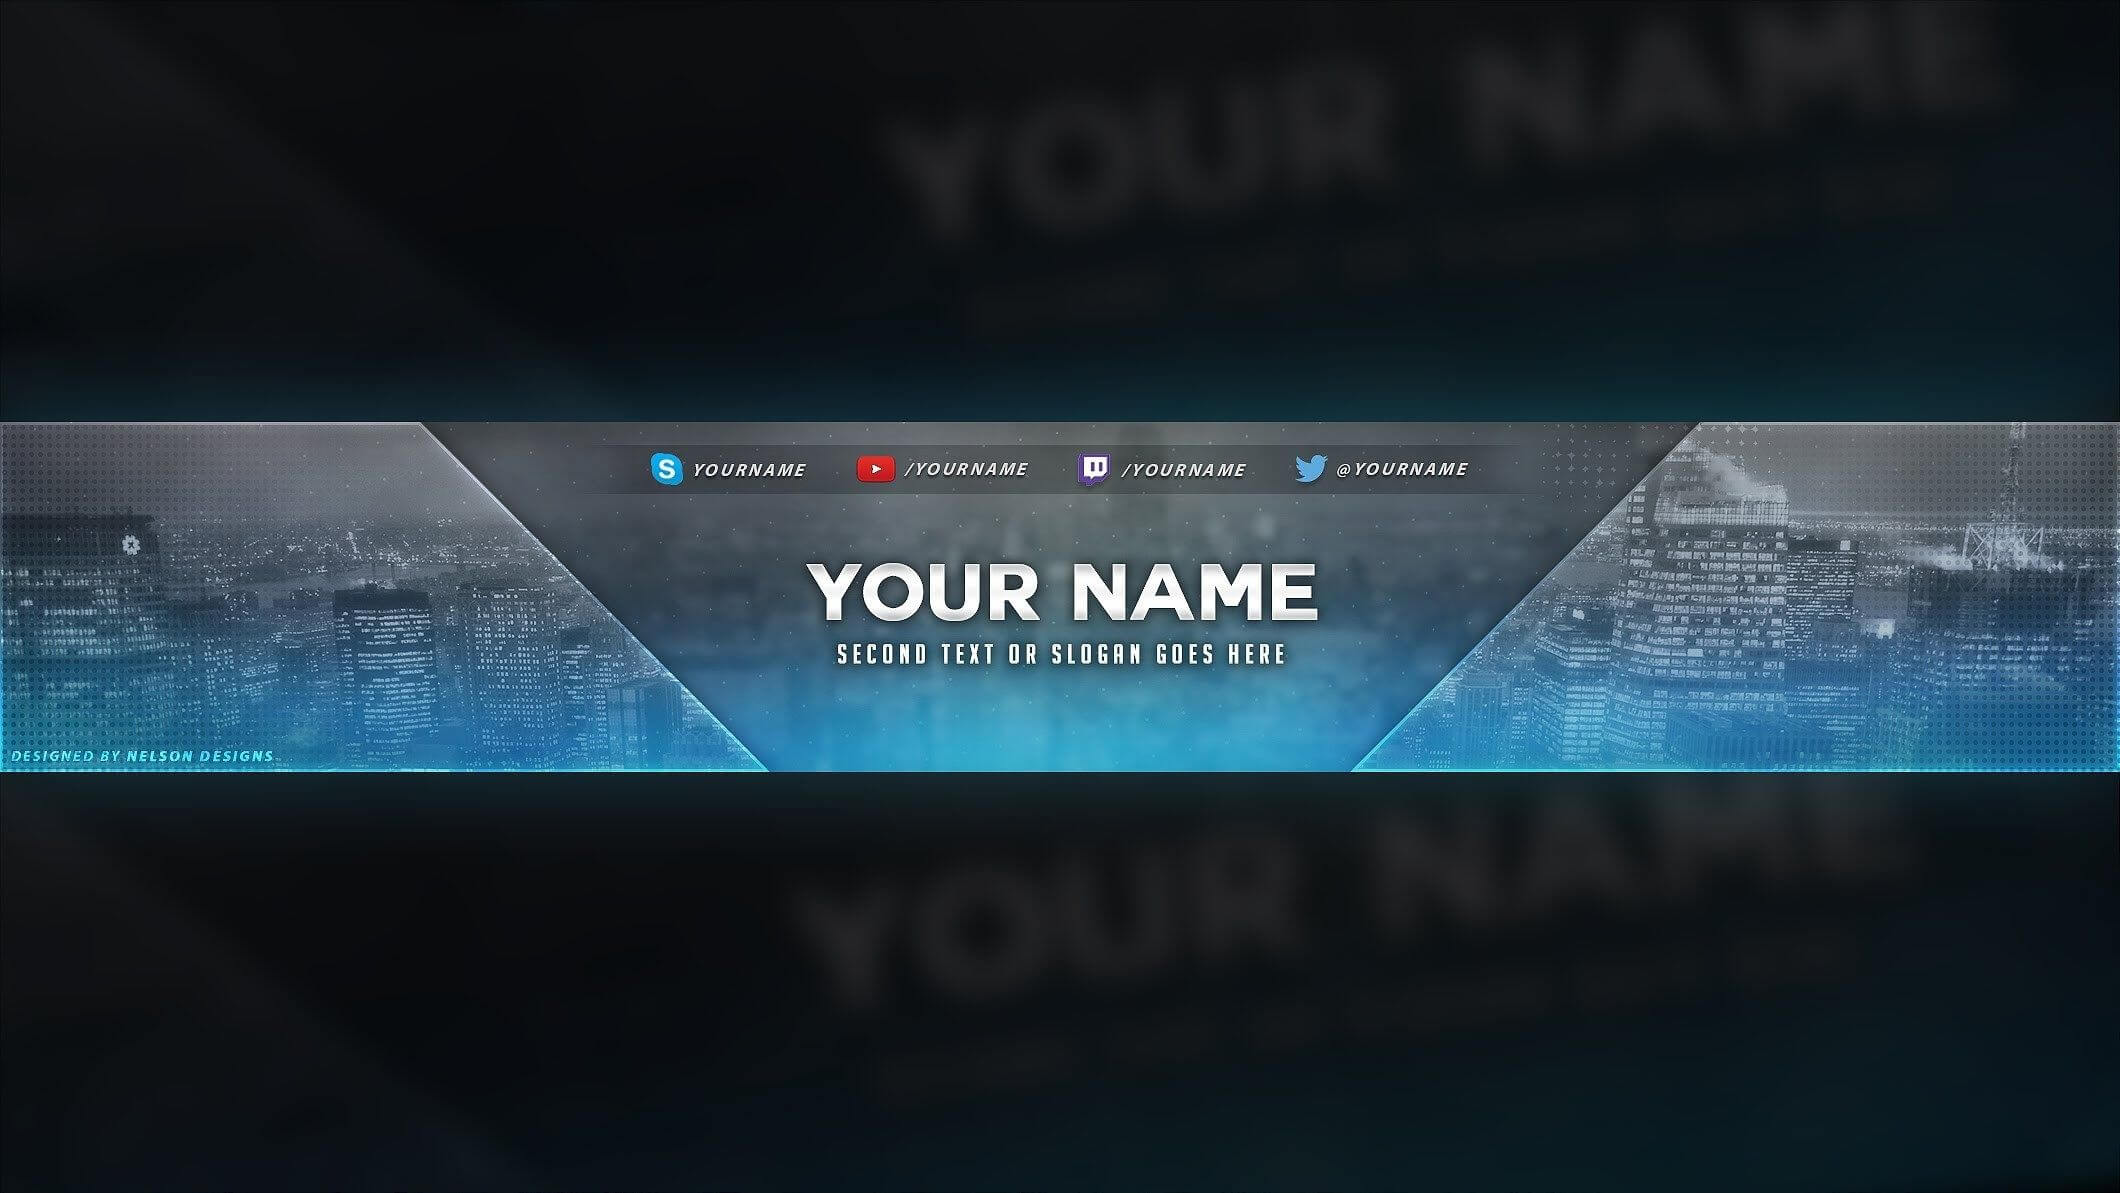 4 Free Youtube Banner Psd Template Designs – Social Media Pertaining To Yt Banner Template